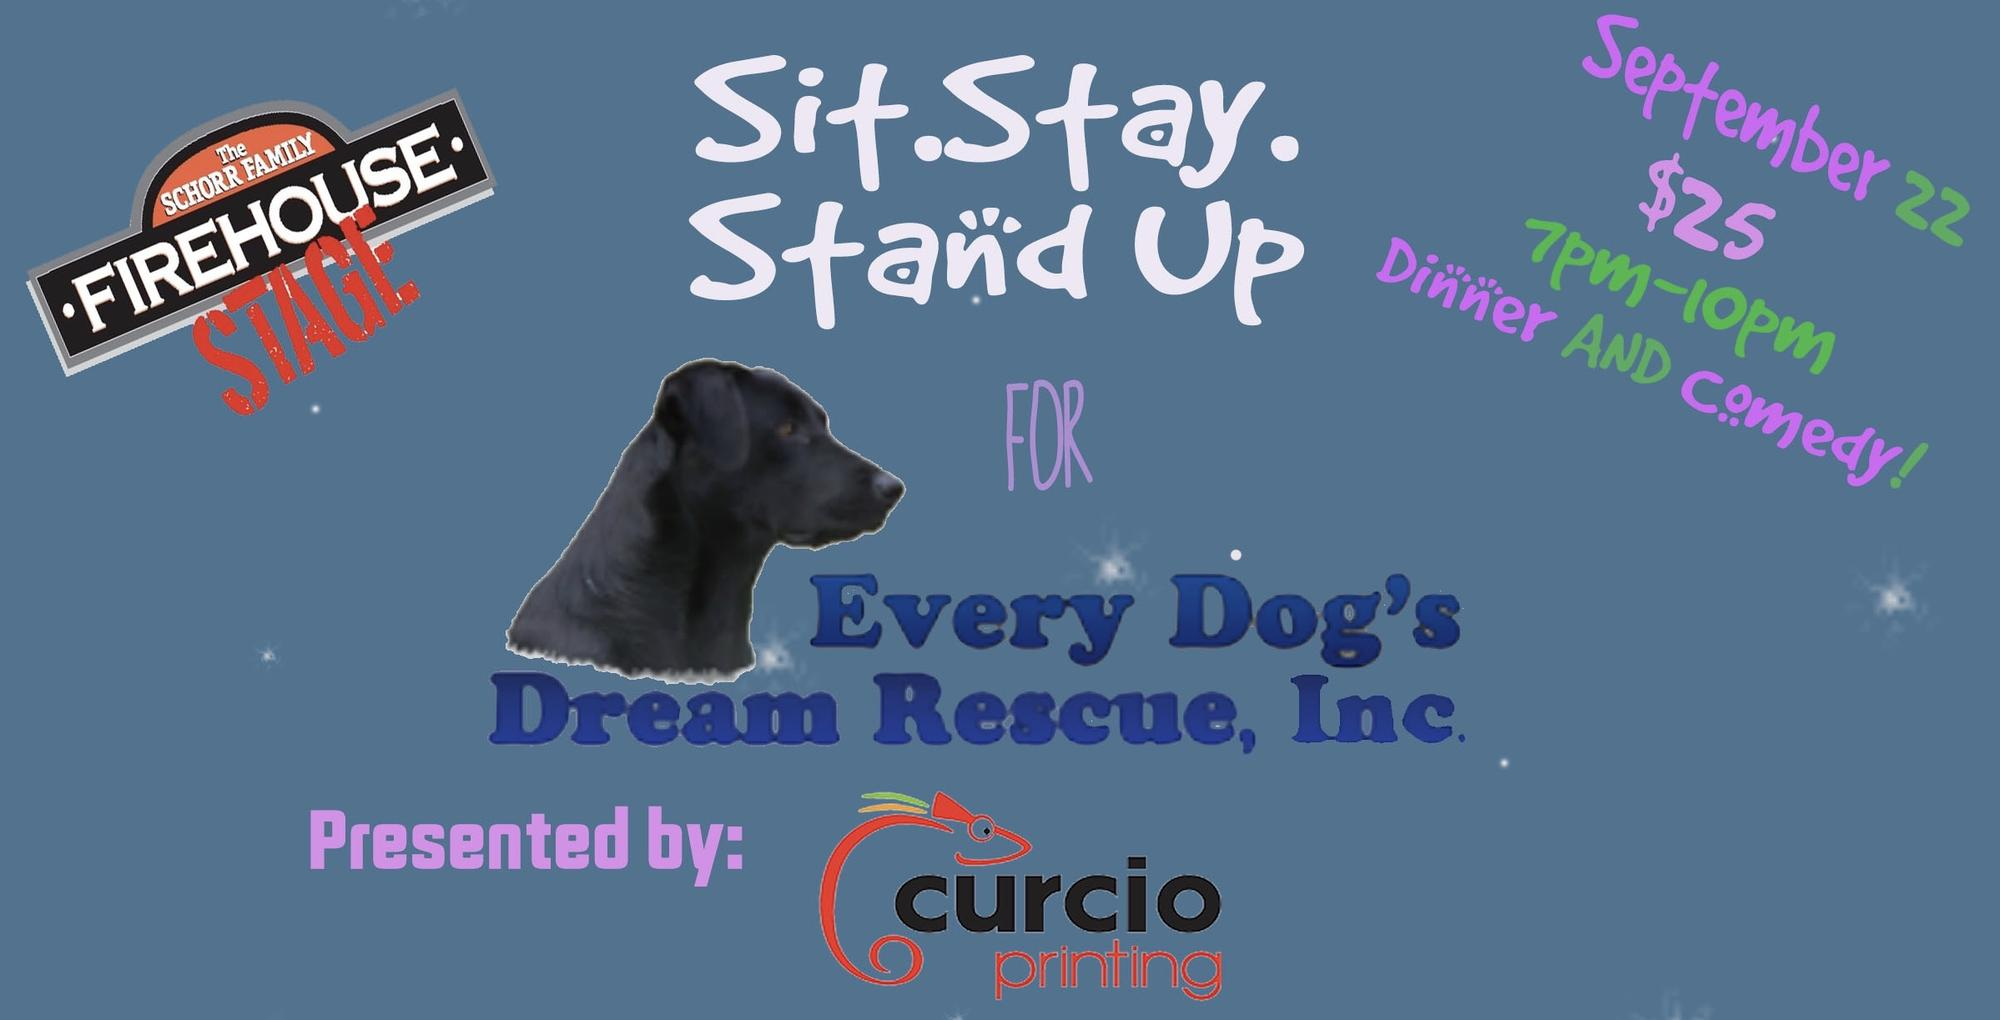 sit stay stand up for every dog s dream rescue tickets in johnson